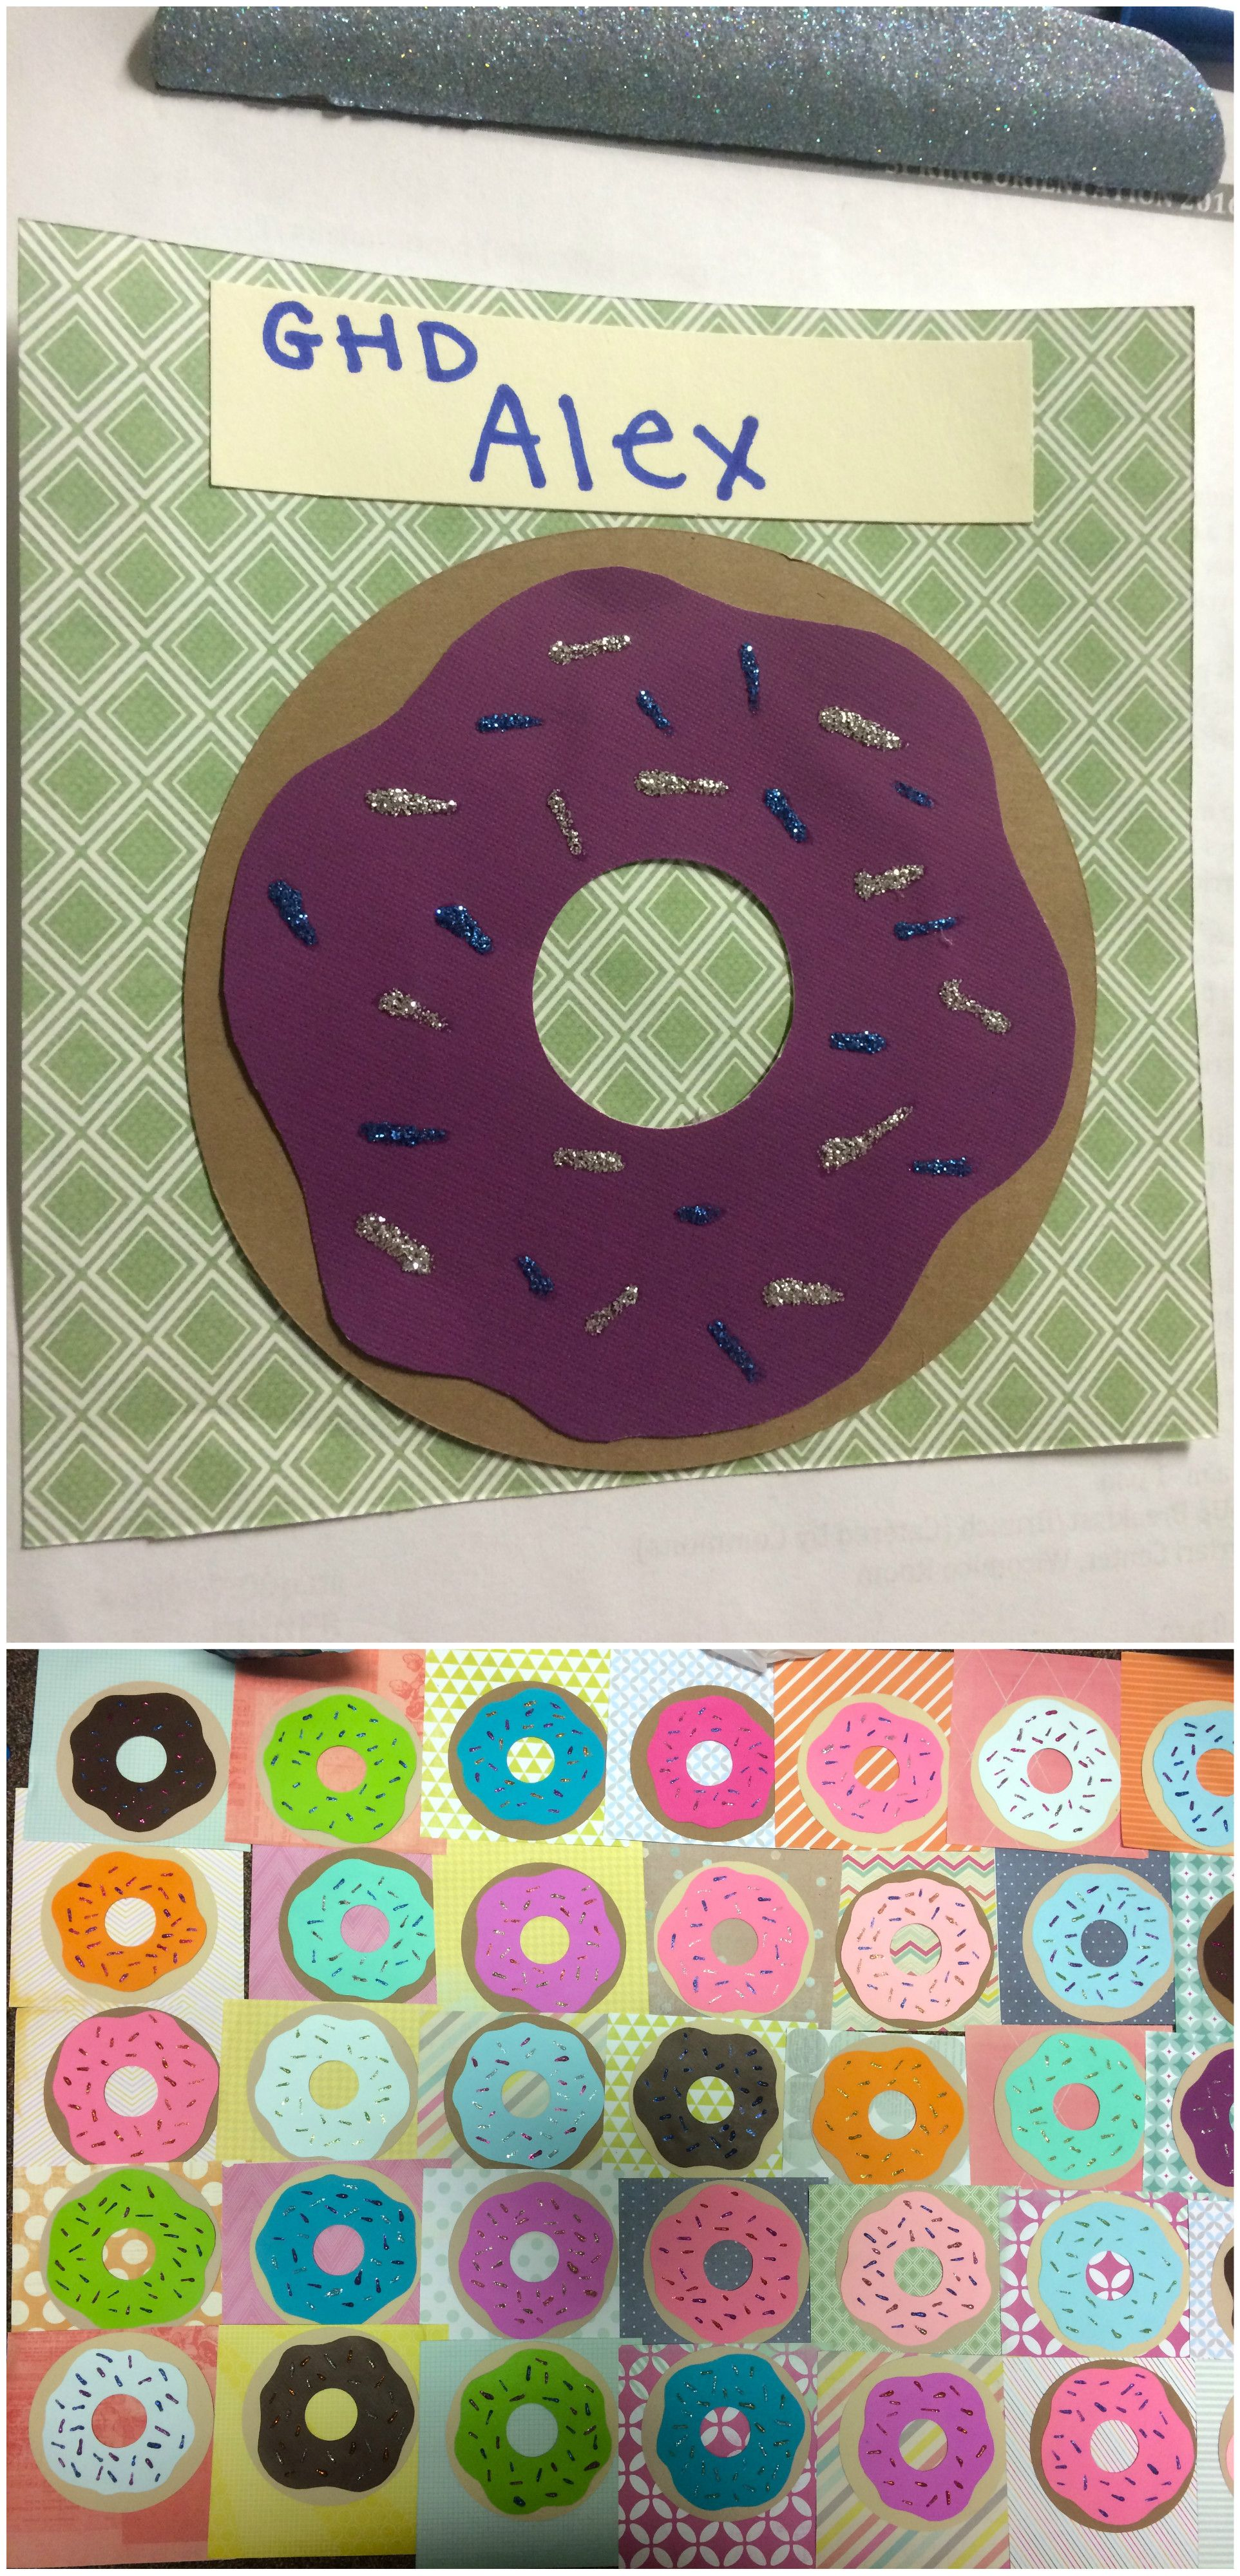 RA CA res life door decs name tags donuts donut & RA CA res life door decs name tags donuts donut theme ...